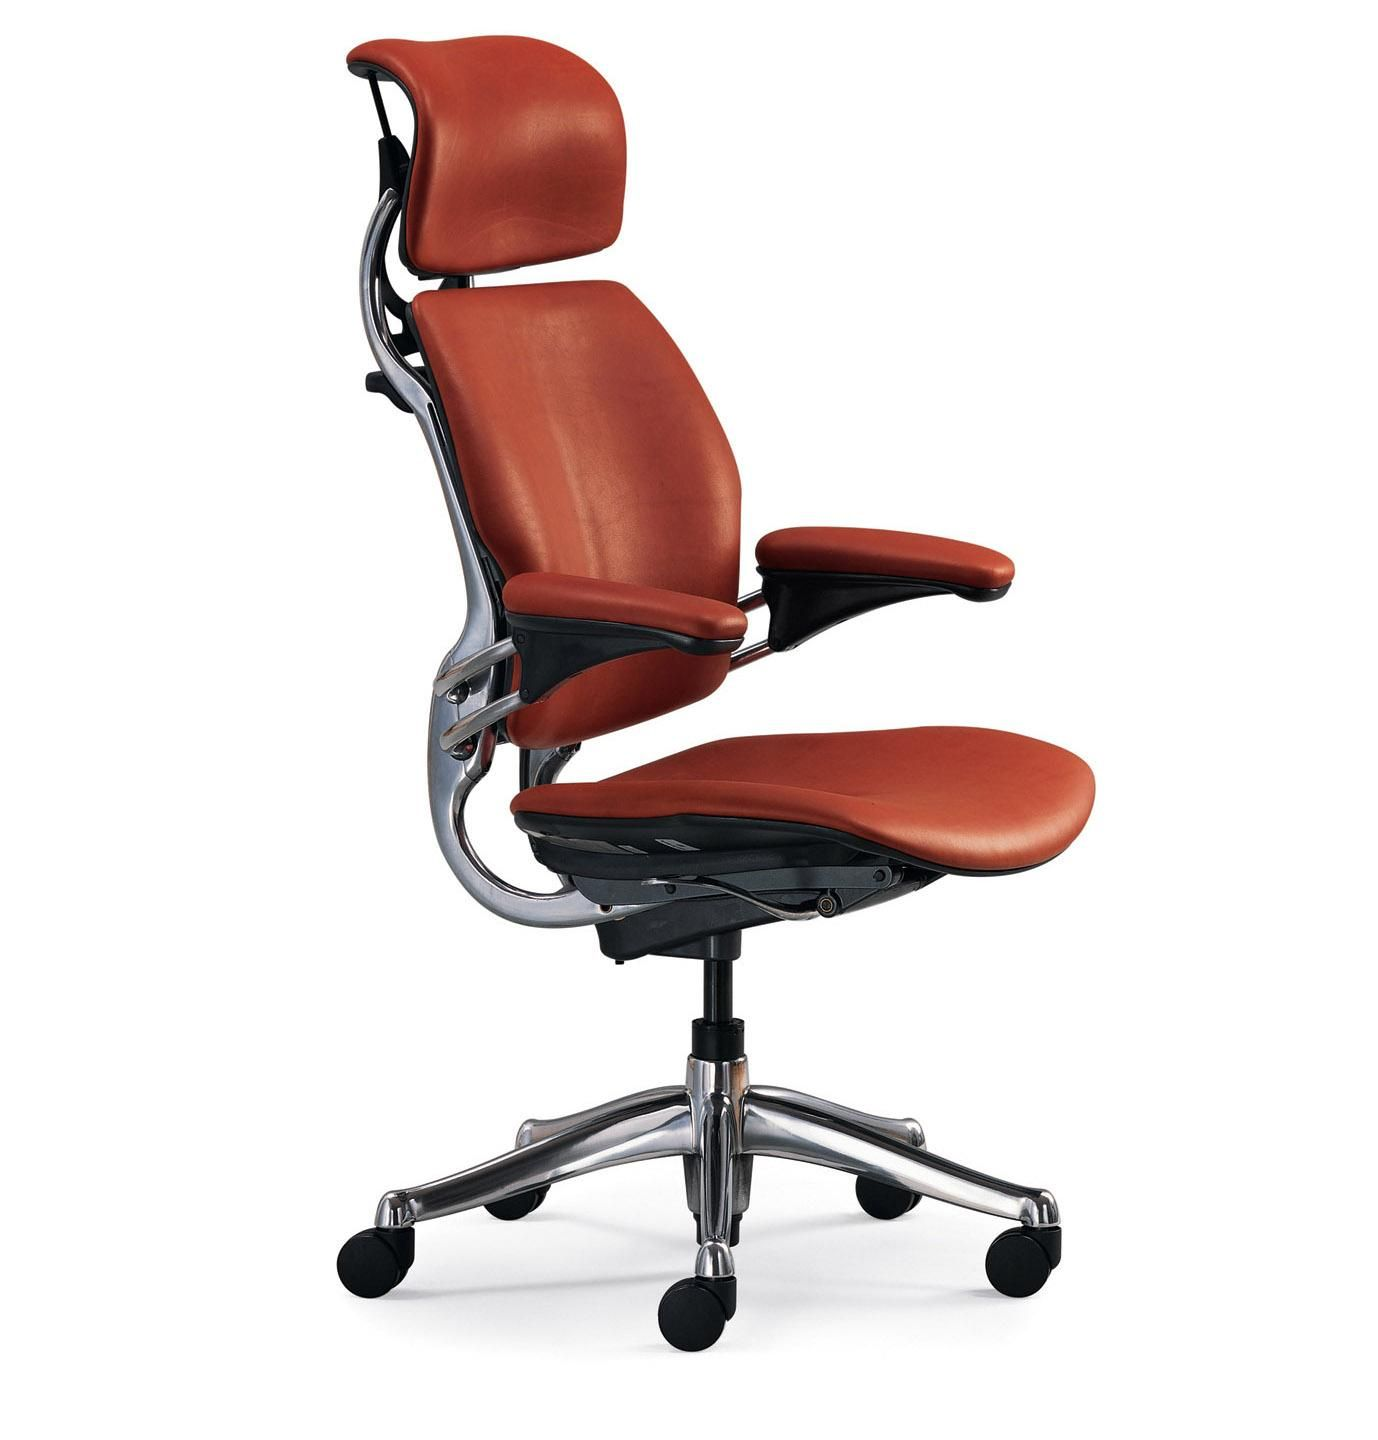 The Humanscale Freedom Chair With Headrest Is Designed To Give The Maximum Ergonomic Benefit Most Comfortable Office Chair Home Office Chairs Best Office Chair